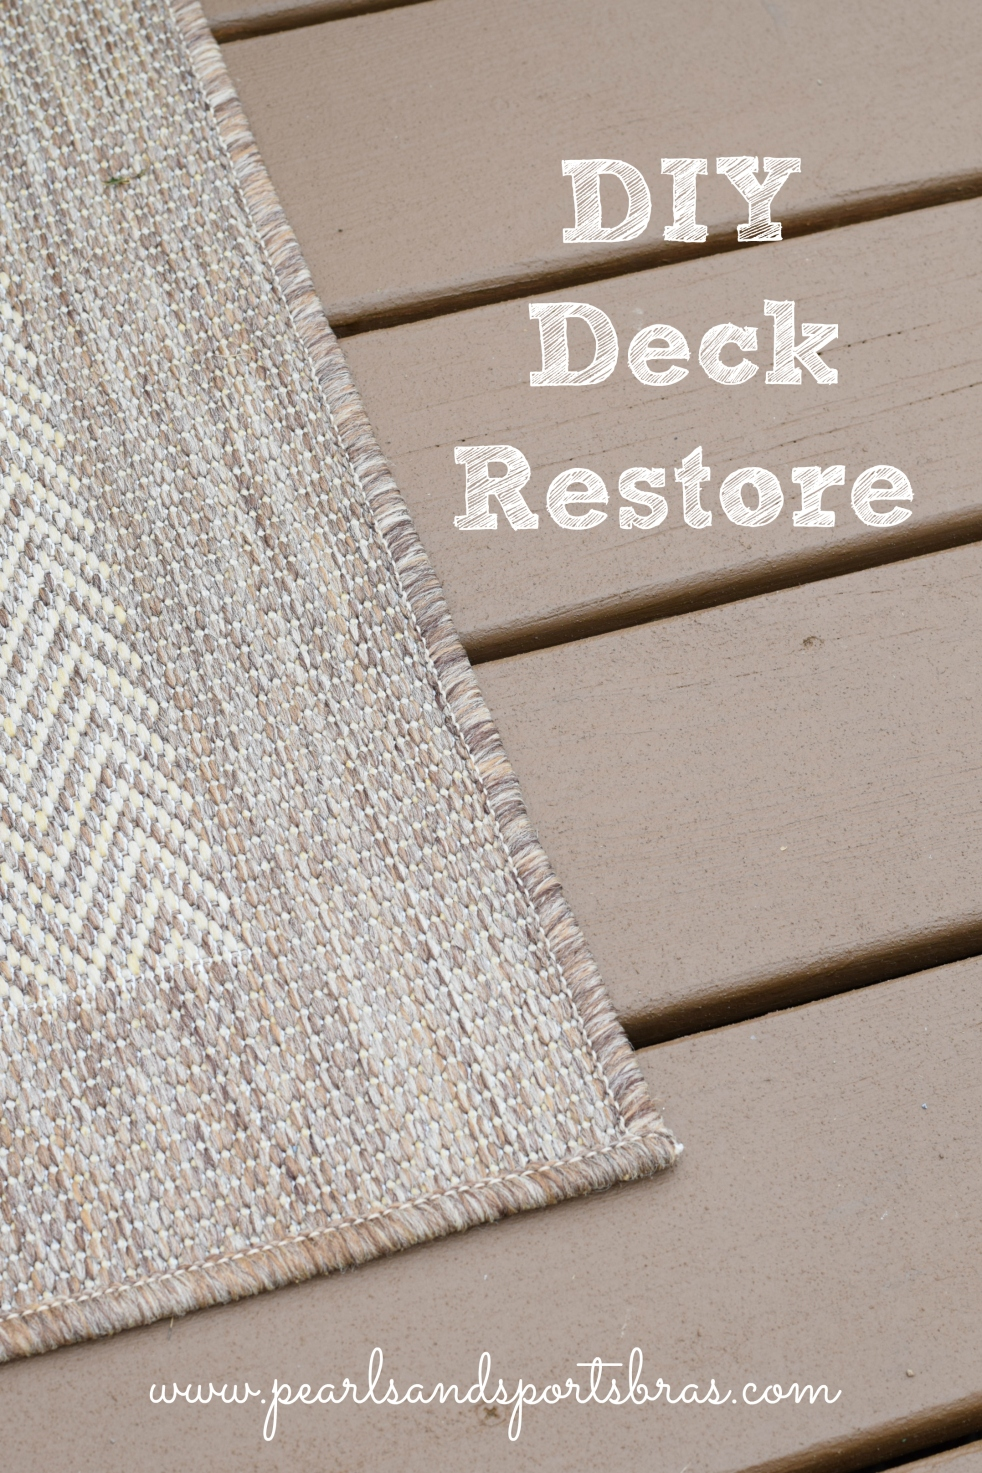 DIY Deck Restore with Olympic Rescue It! |www.pearlsandsportsbras.com|